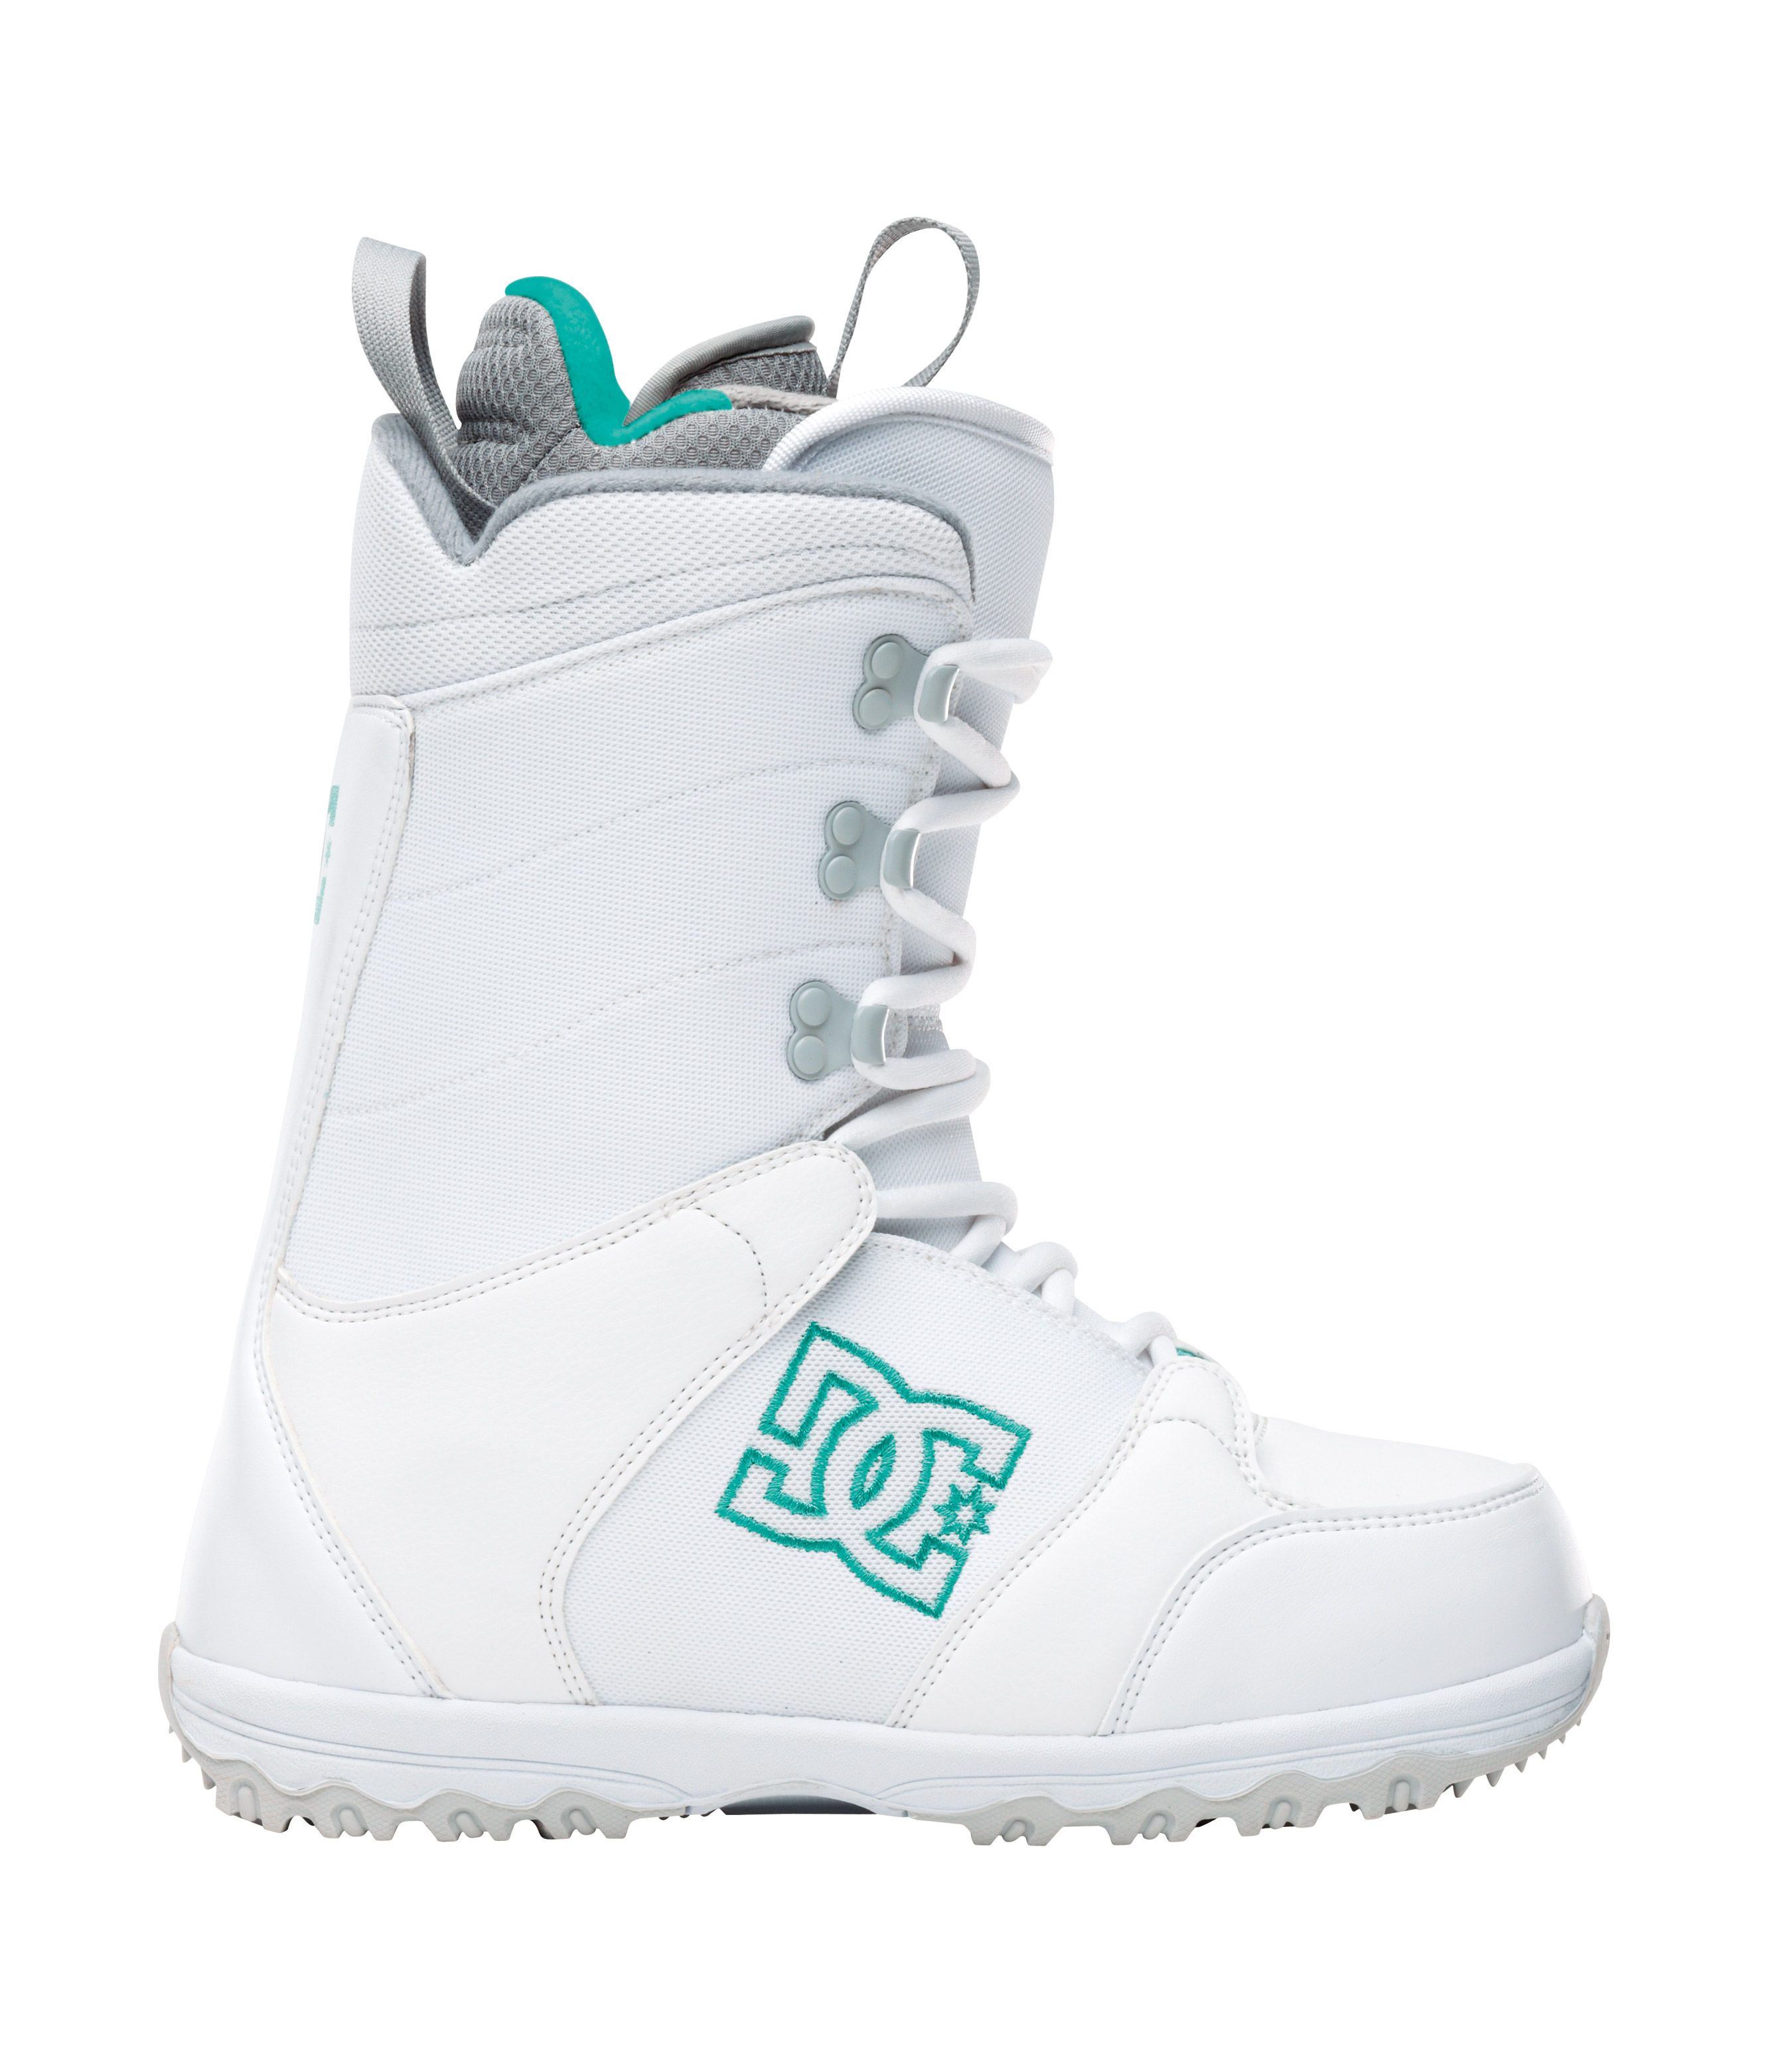 Snowboard Snowboarding is all about fun, getting out there with your friends and pushing each other. The drop in EVA midsole will provide cushy comfort and the low profile outsole will give you board control that will make your girlfriends jealous!Key Features of the DC Phase Snowboard Boots: LOW profile Command liner Flex rating: 5 - $90.95